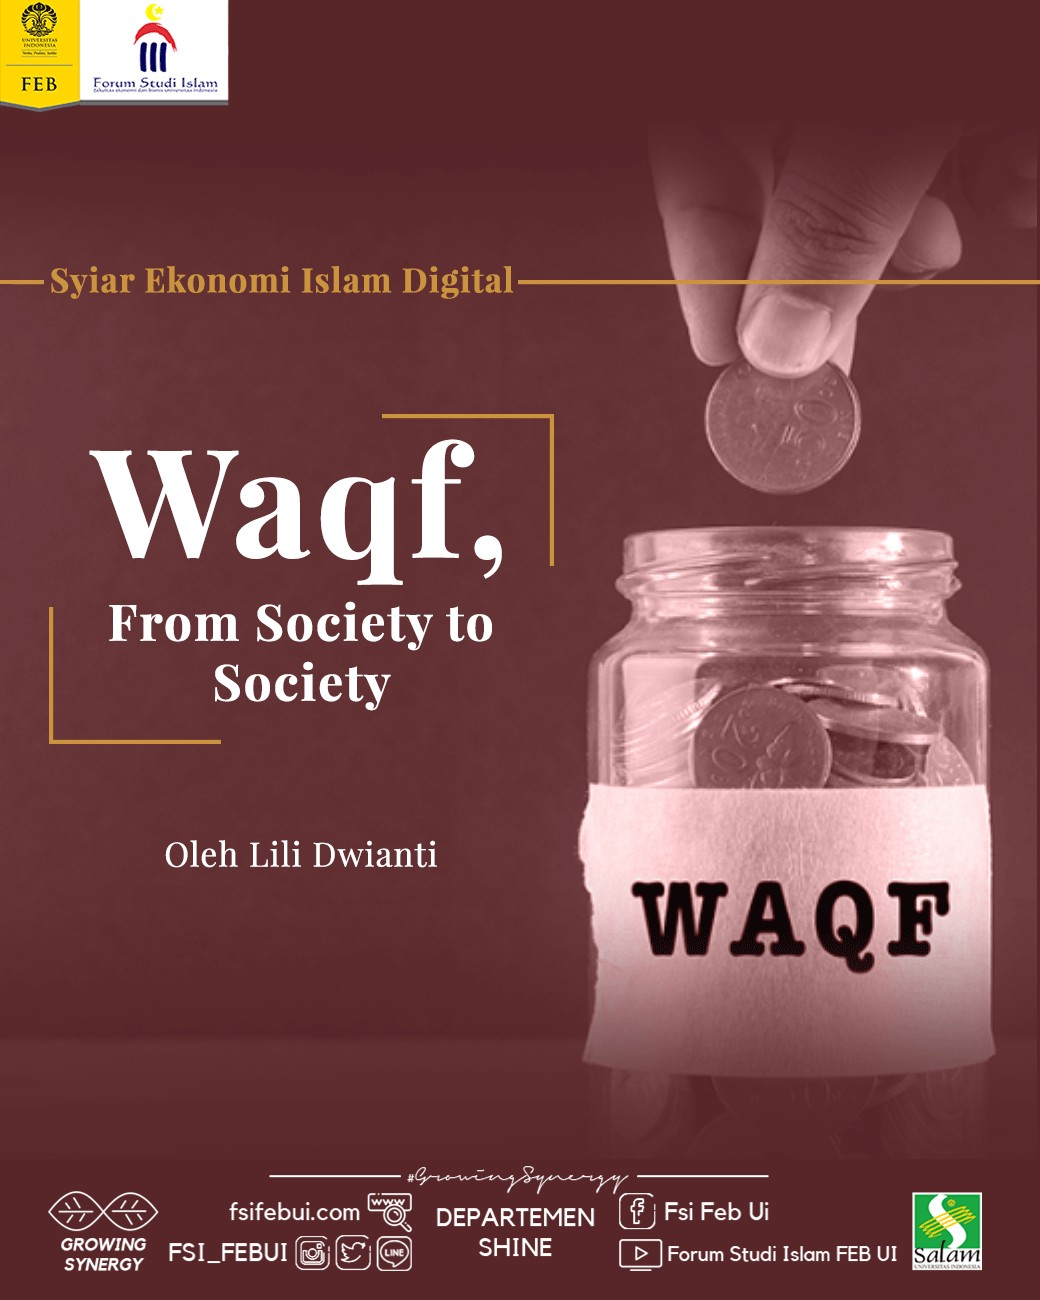 Waqf, From Society to Society